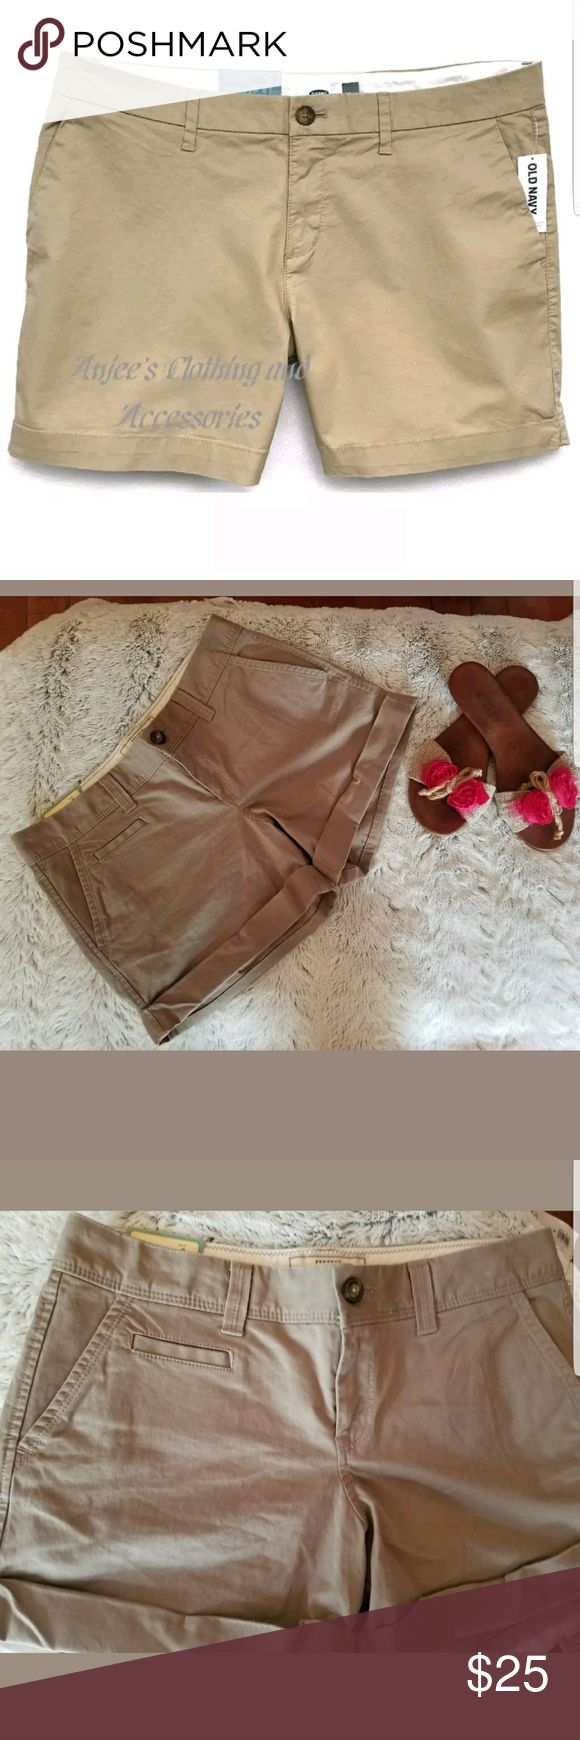 "NWT OLD NAVY Authentic Women's Mid Rise 5"" Inseam NWT OLD NAVY Authentic Women's Mid Rise 5"" Inseam Solid Shorts Size 4 Khaki Old Navy Shorts Cargos"